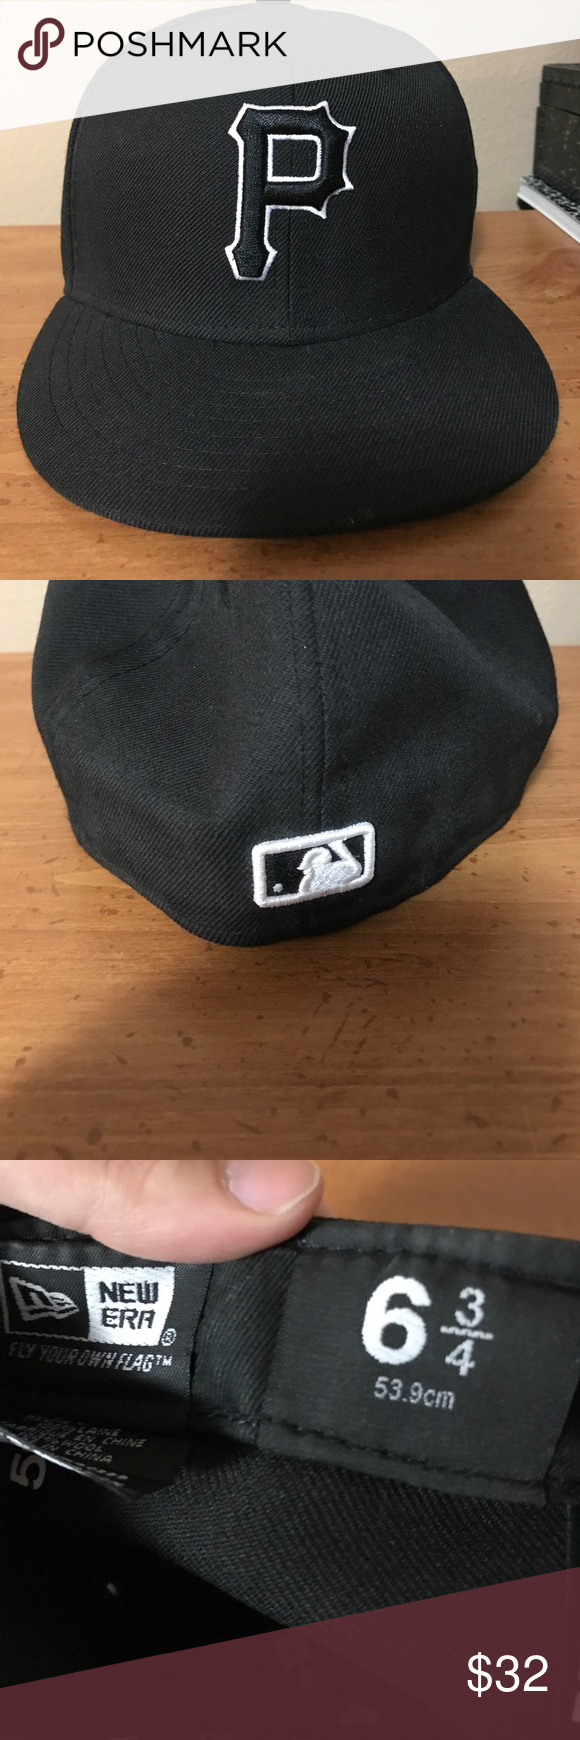 Fitted Pittsburgh Pirates Hat Pirate Hats Pirate Accessories Hats